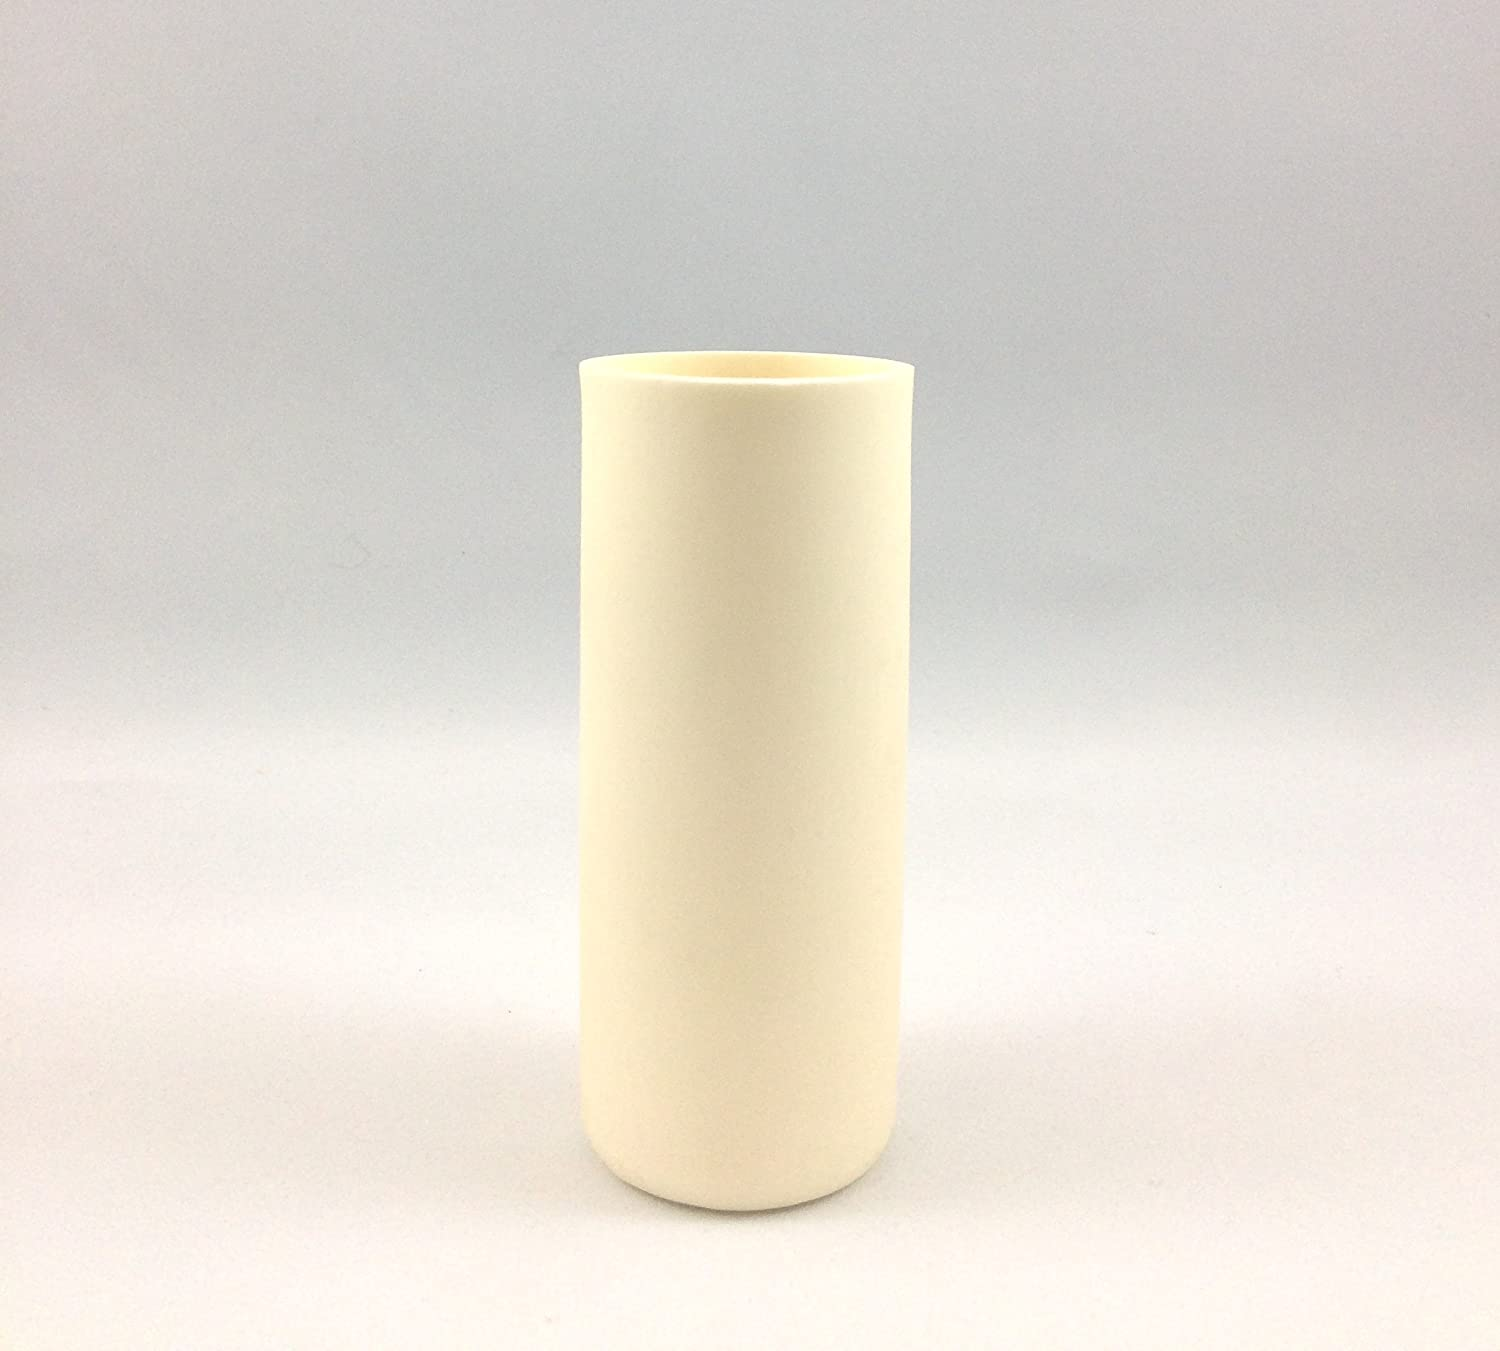 350 Gram Ceramic Alumina Crucible Cup Precious Metal Gold Silver Bronze Copper Brass Torch Melting Jewelry Casting